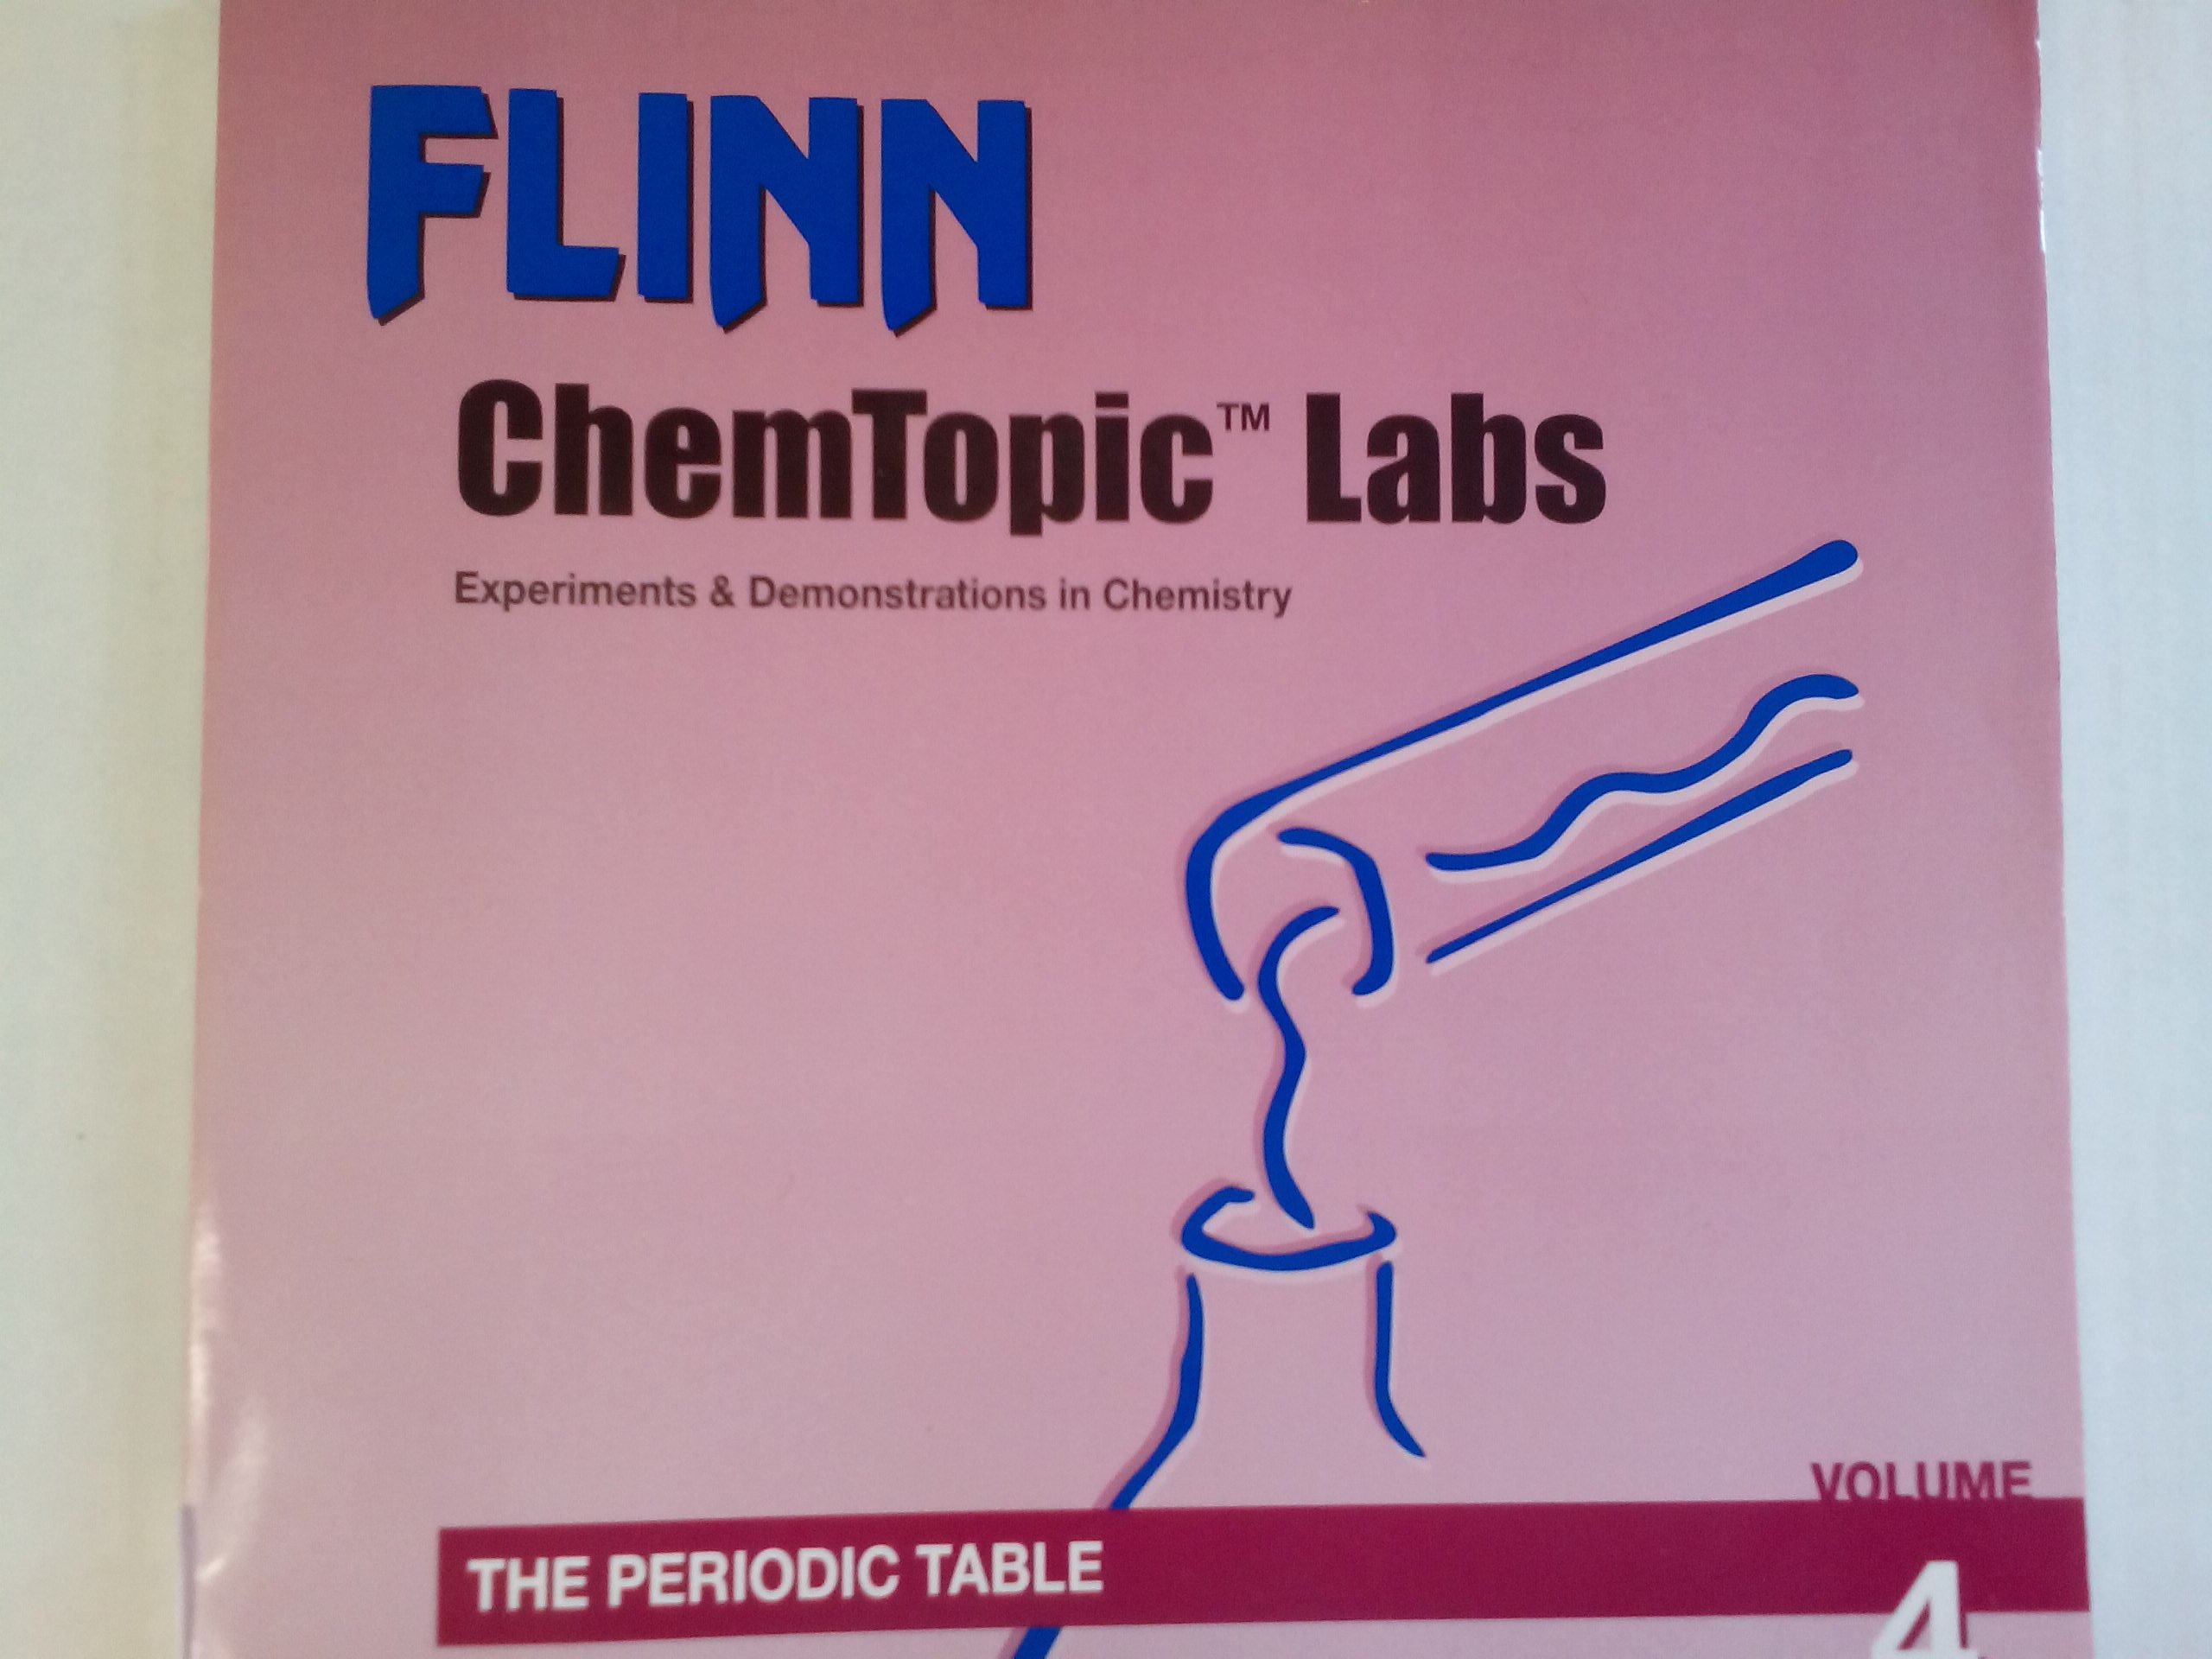 the periodic table flinn chemtopic labs experiments demonstrations in chemistry 4 irene cesa 9781877991721 amazoncom books